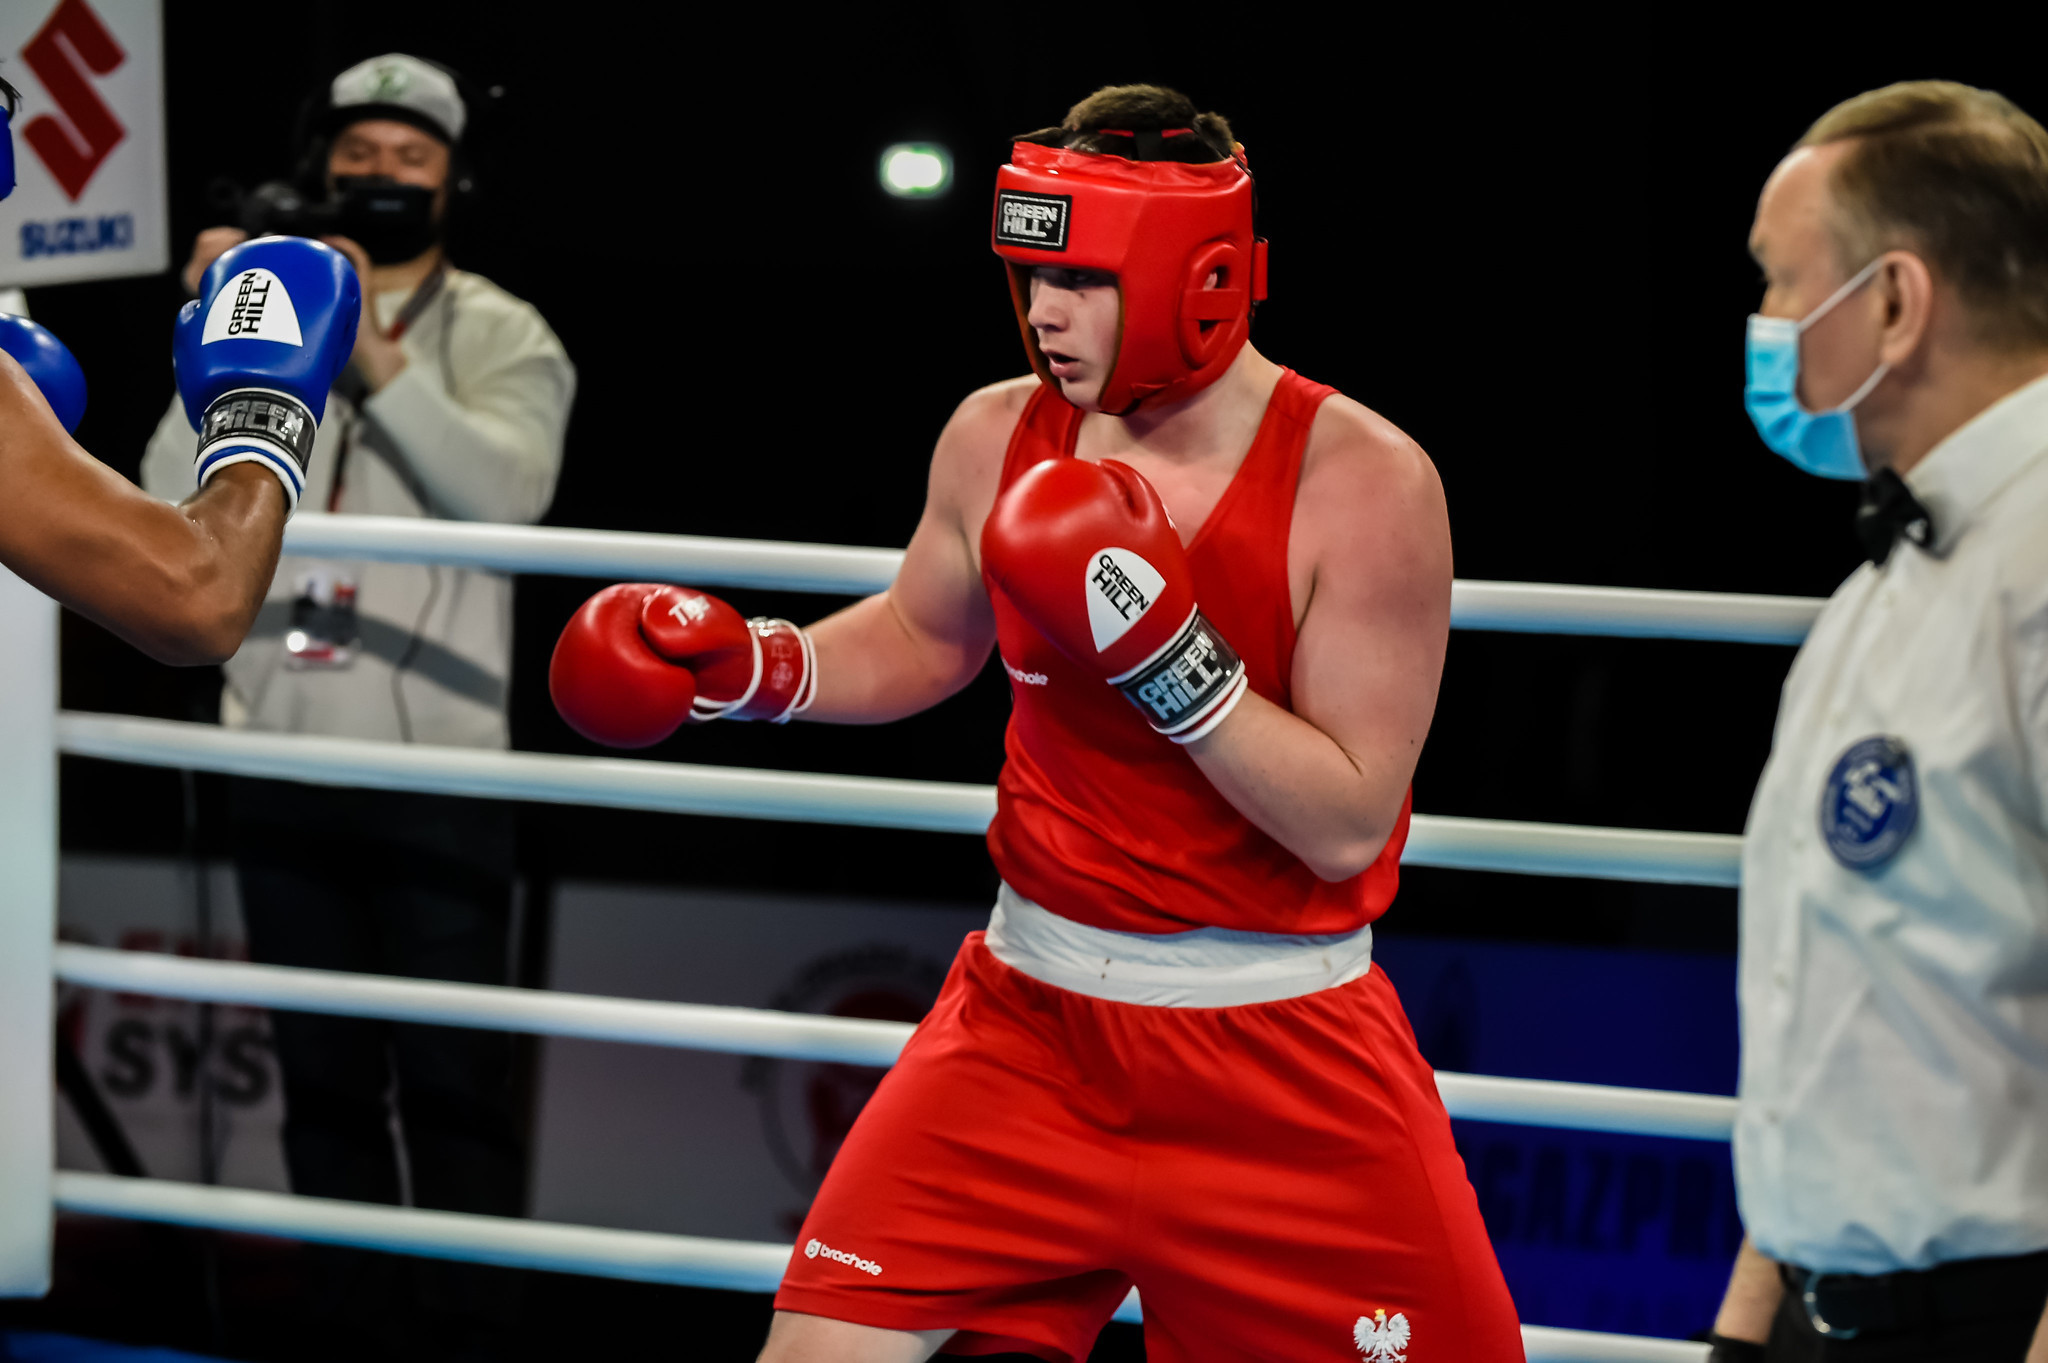 Poland's Jakub Straszewski is into the men's heavyweight final at a home Youth World Championships ©AIBA